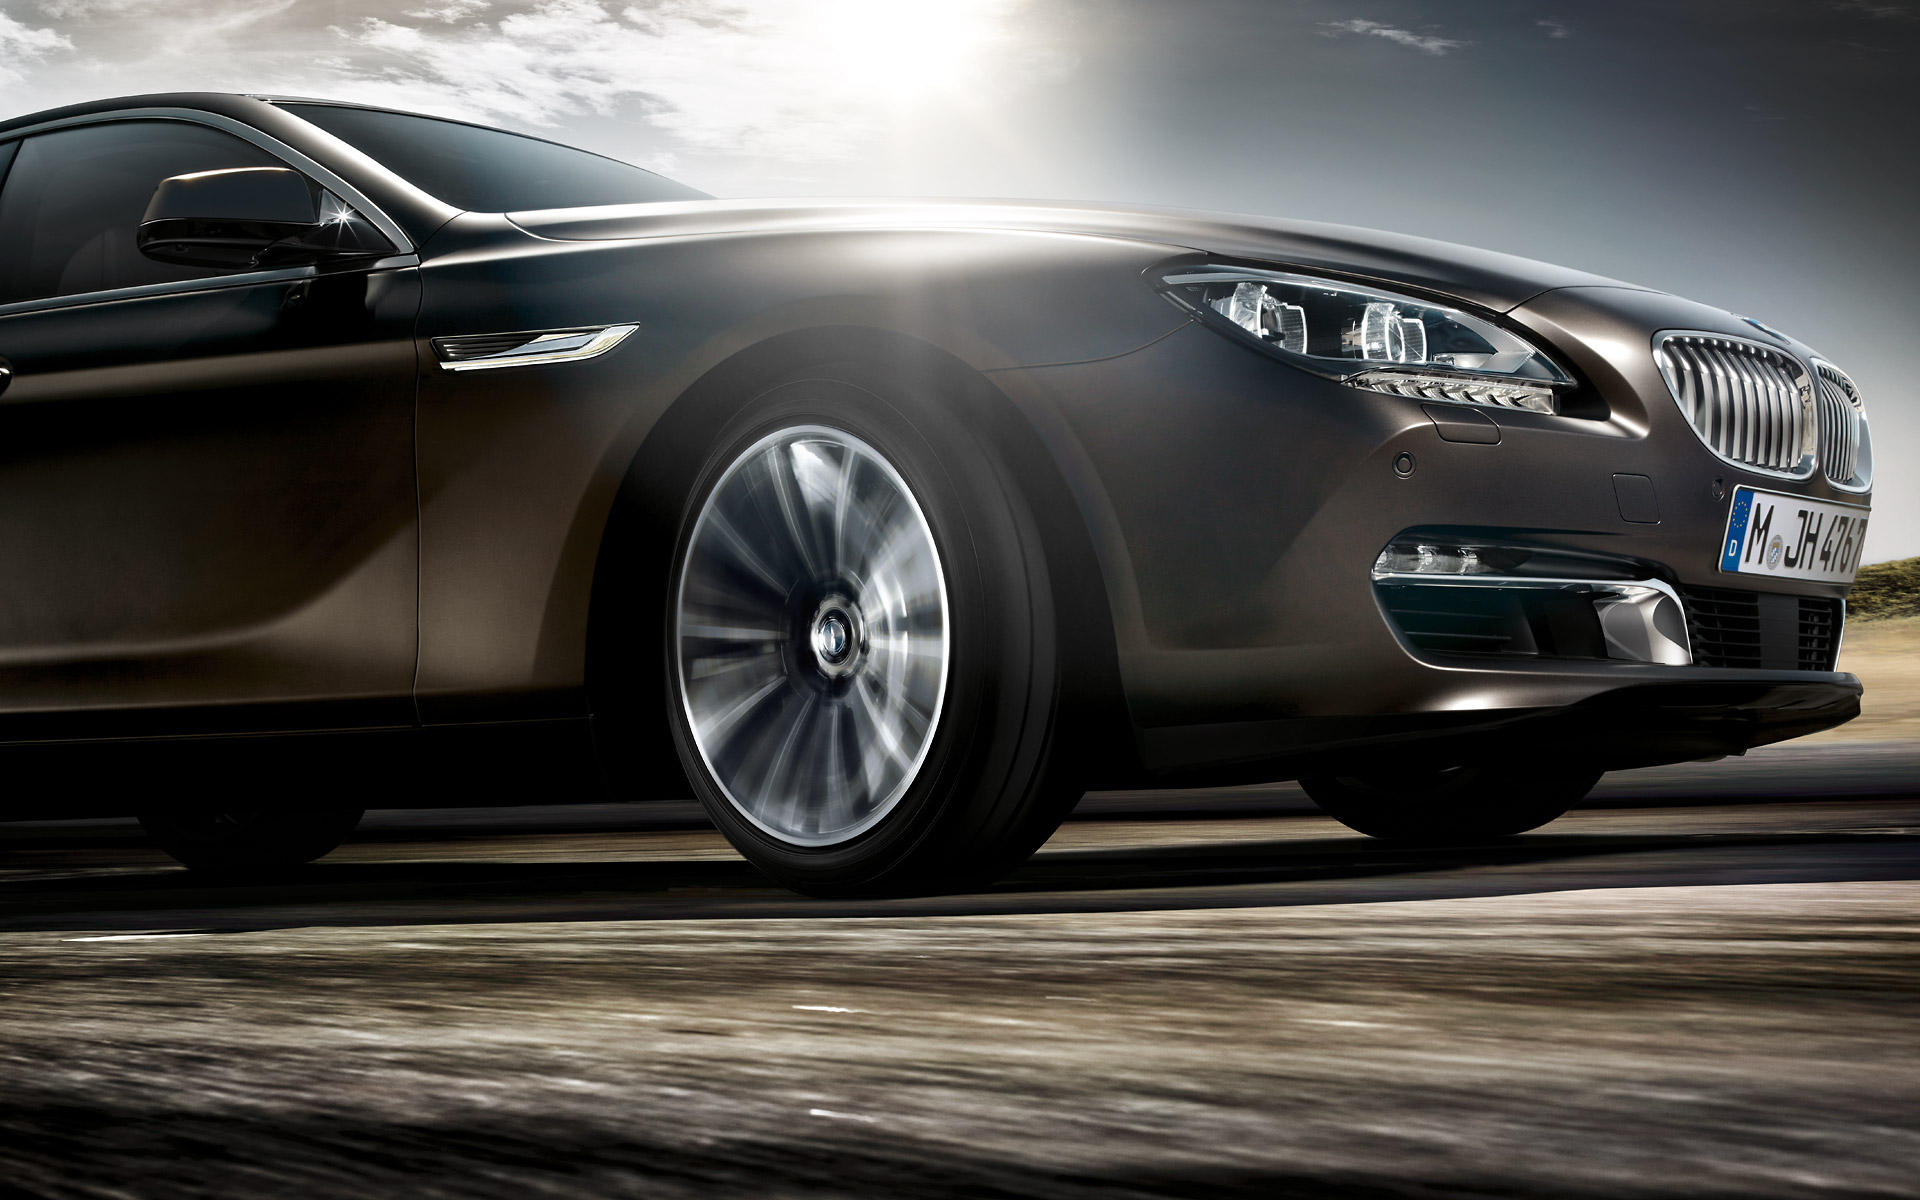 BMW_6_Series_Gran_Coupe_Wallpaper_12_1920x1200